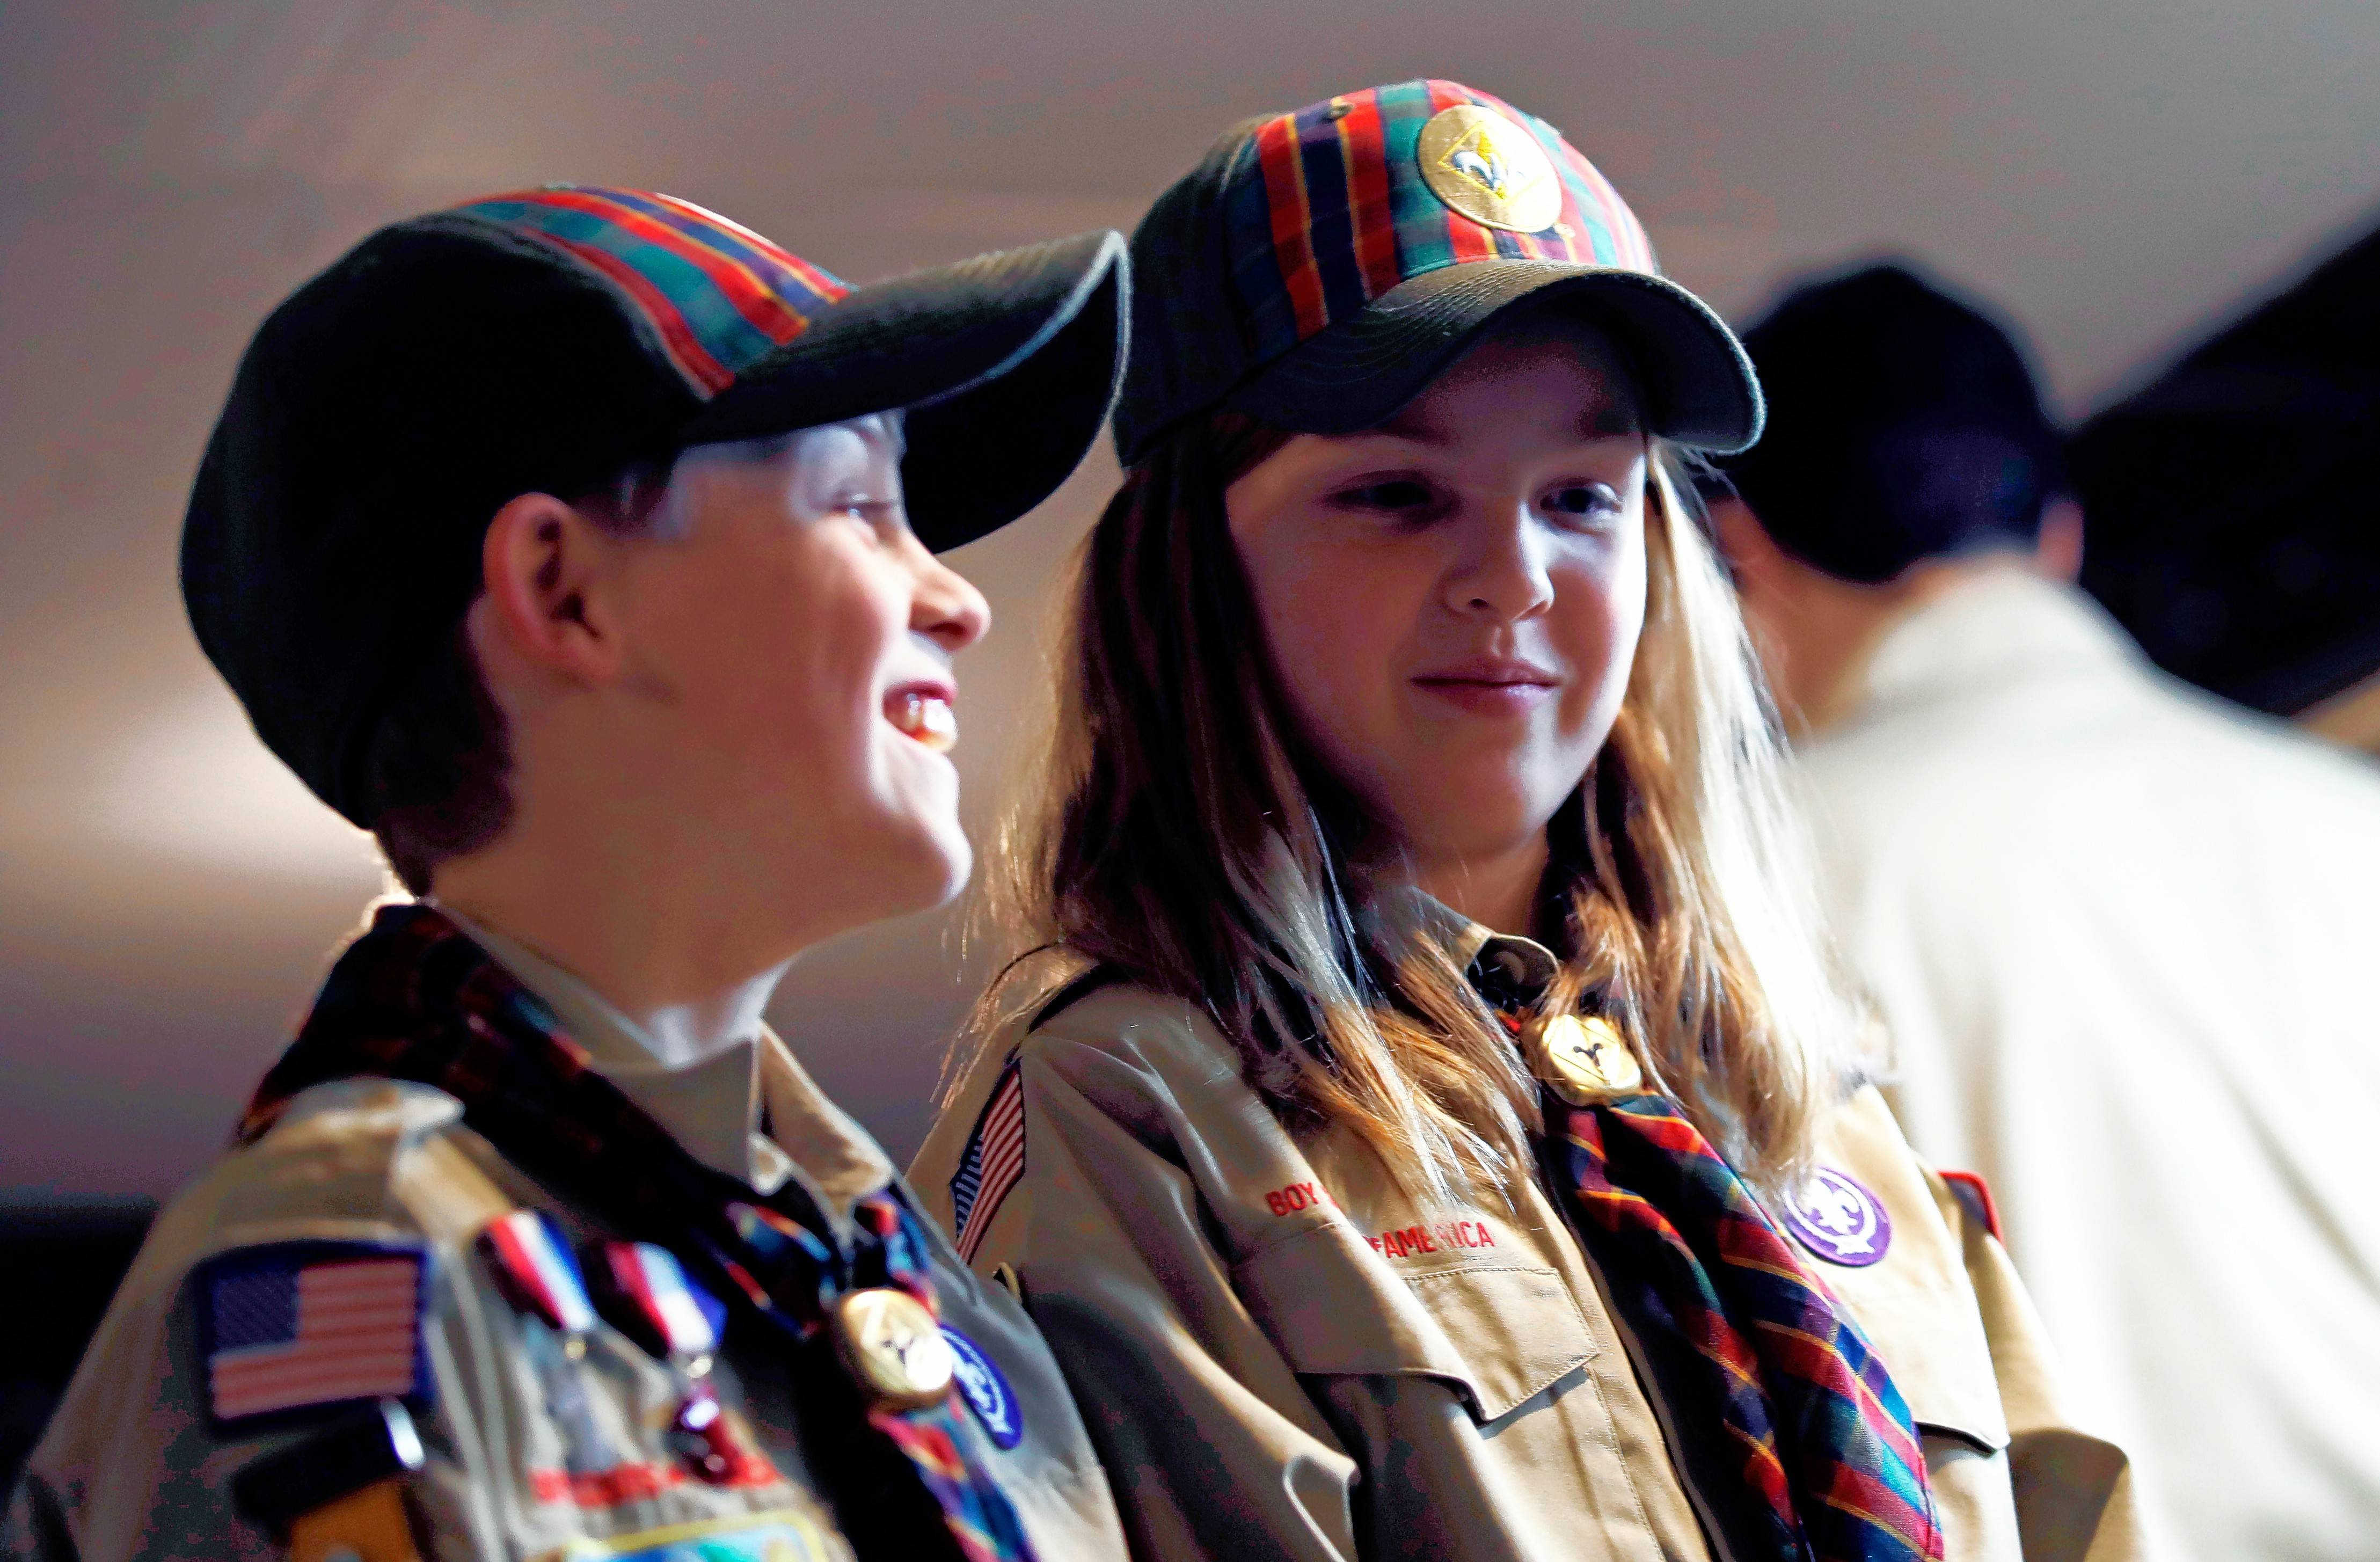 The addition of girls to the Cub Scouts seems to be going well enough that the Boy Scouts will start accepting females next year. In doing so, the Boy Scouts will change its name to the gender-neutral Scouts BSA.